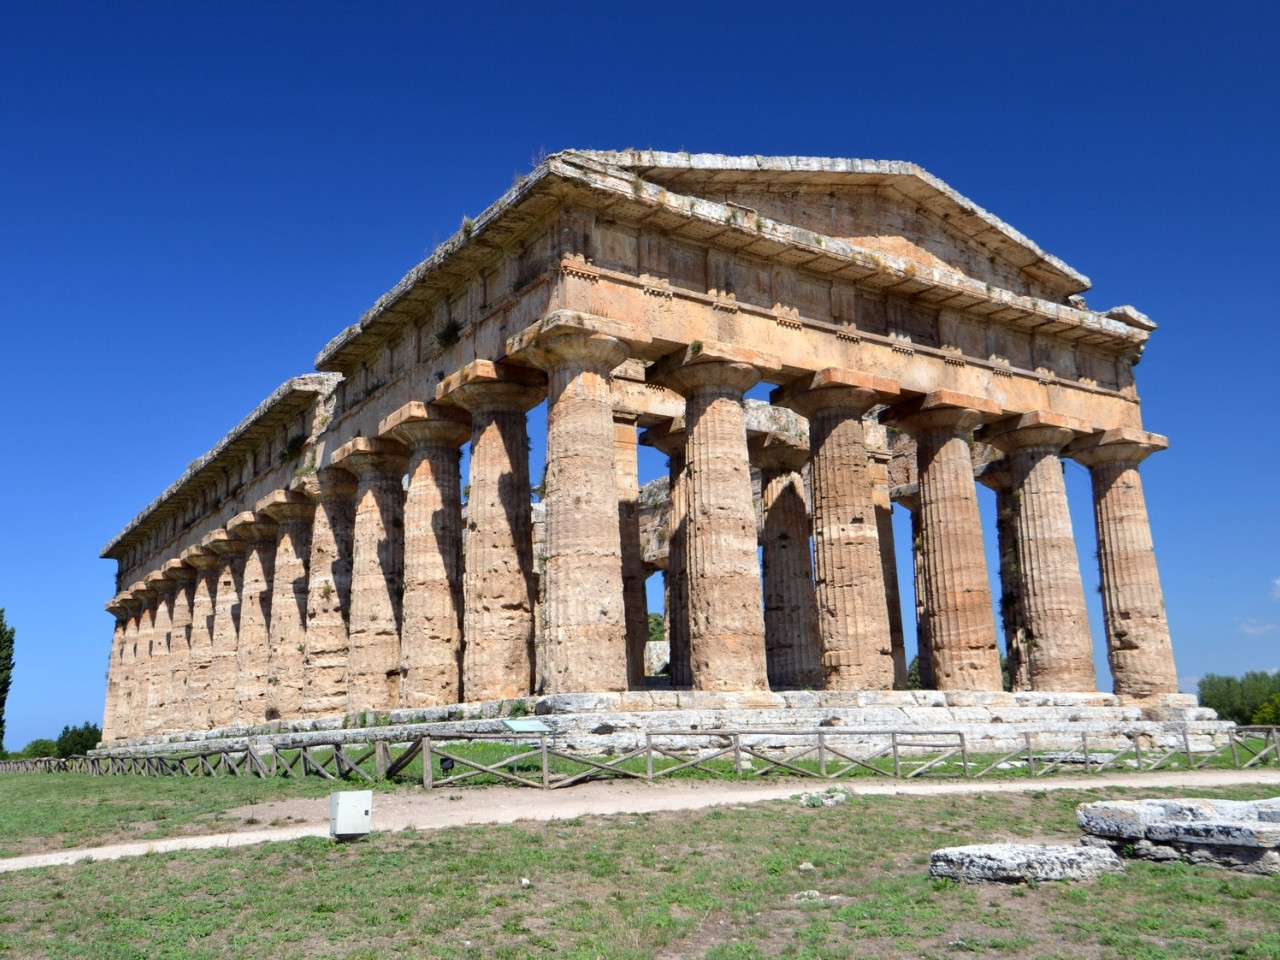 Excursions from Sorrento - Visit Sorrento - excursion in italy - excursion herculaneum - excursion paestum - excursion from hotel aminta